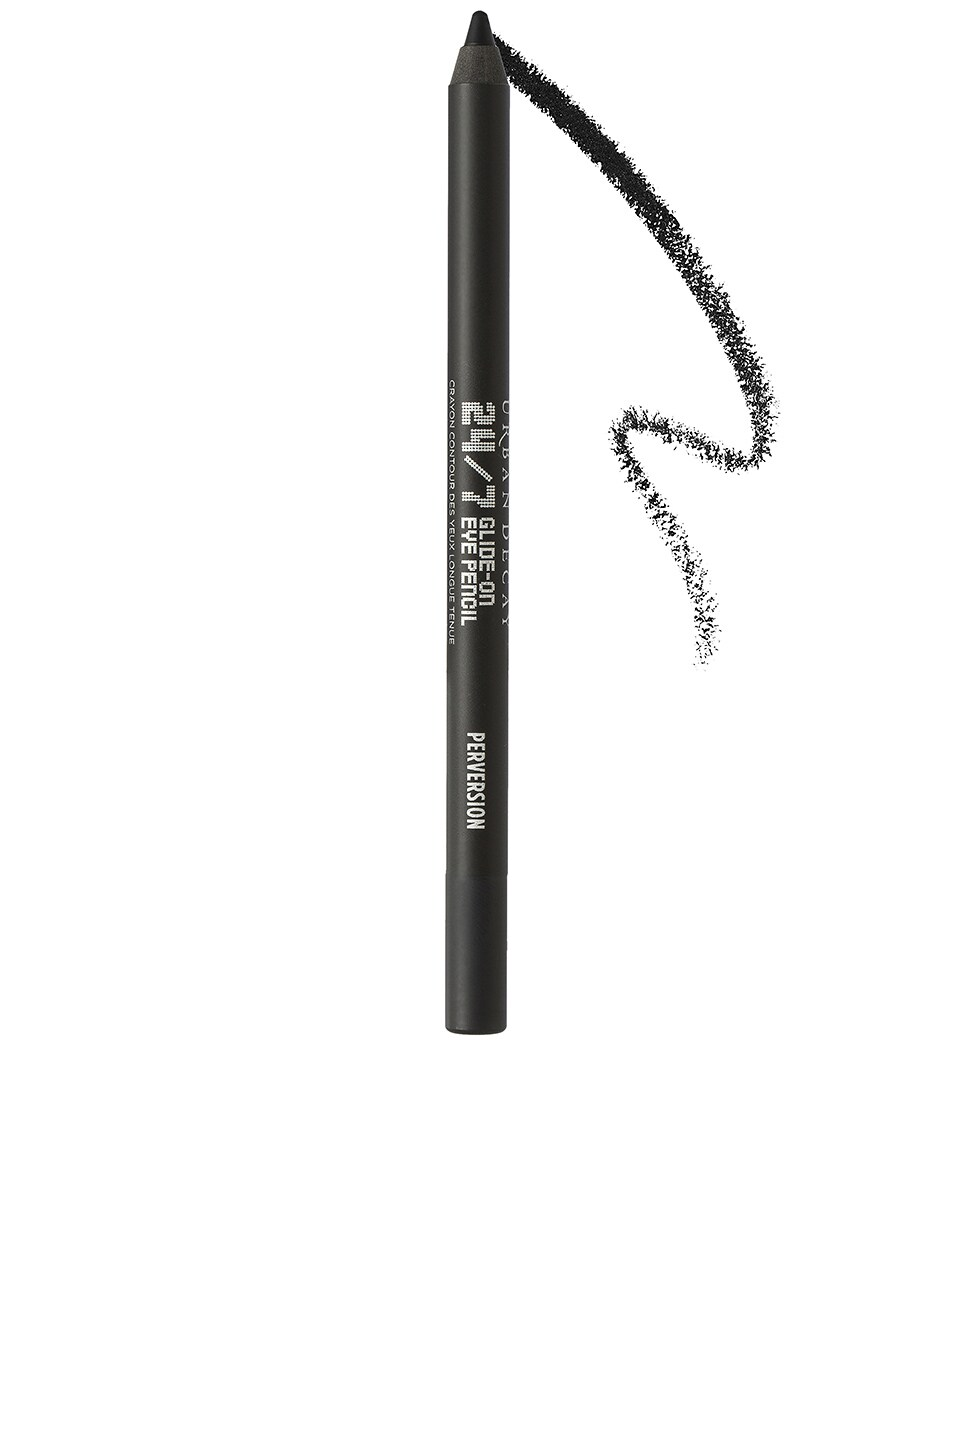 House of Harlow 1960 x Urban Decay 24/7 Glide-on Eye Pencil in Perversion